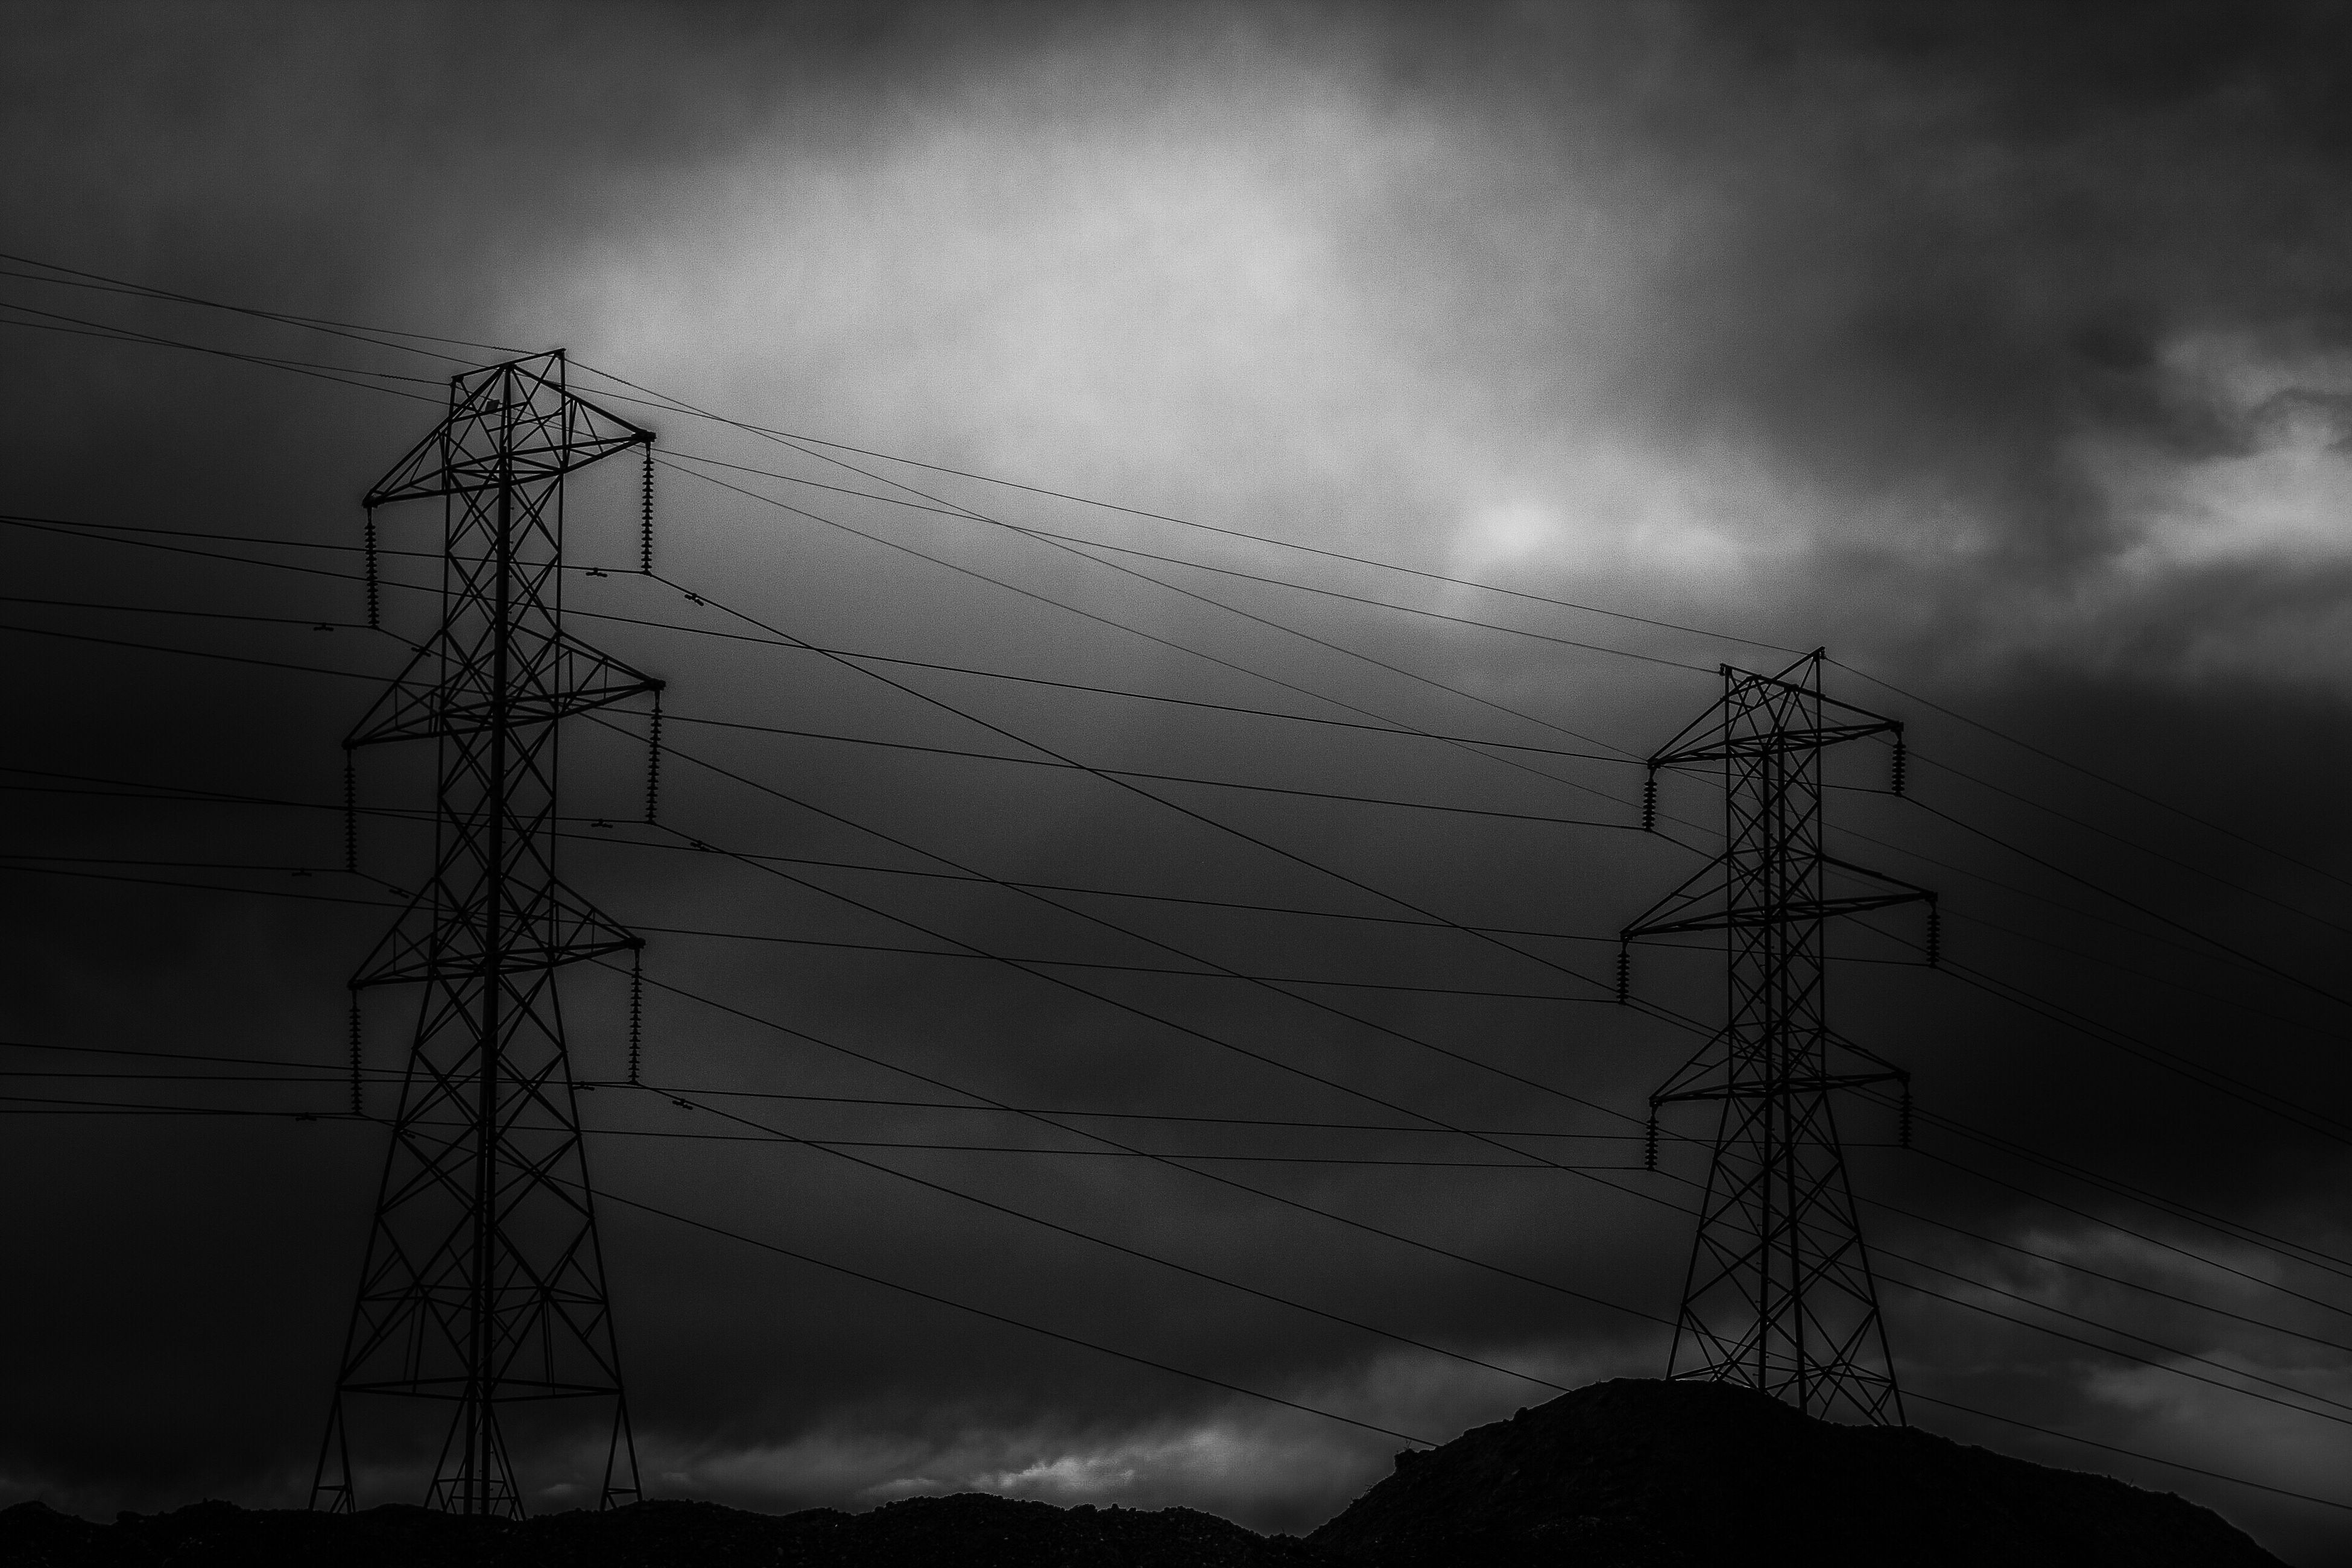 electricity, connection, electricity pylon, power line, cable, dusk, power supply, no people, silhouette, sunset, sky, cloud - sky, electricity tower, outdoors, animal themes, nature, day